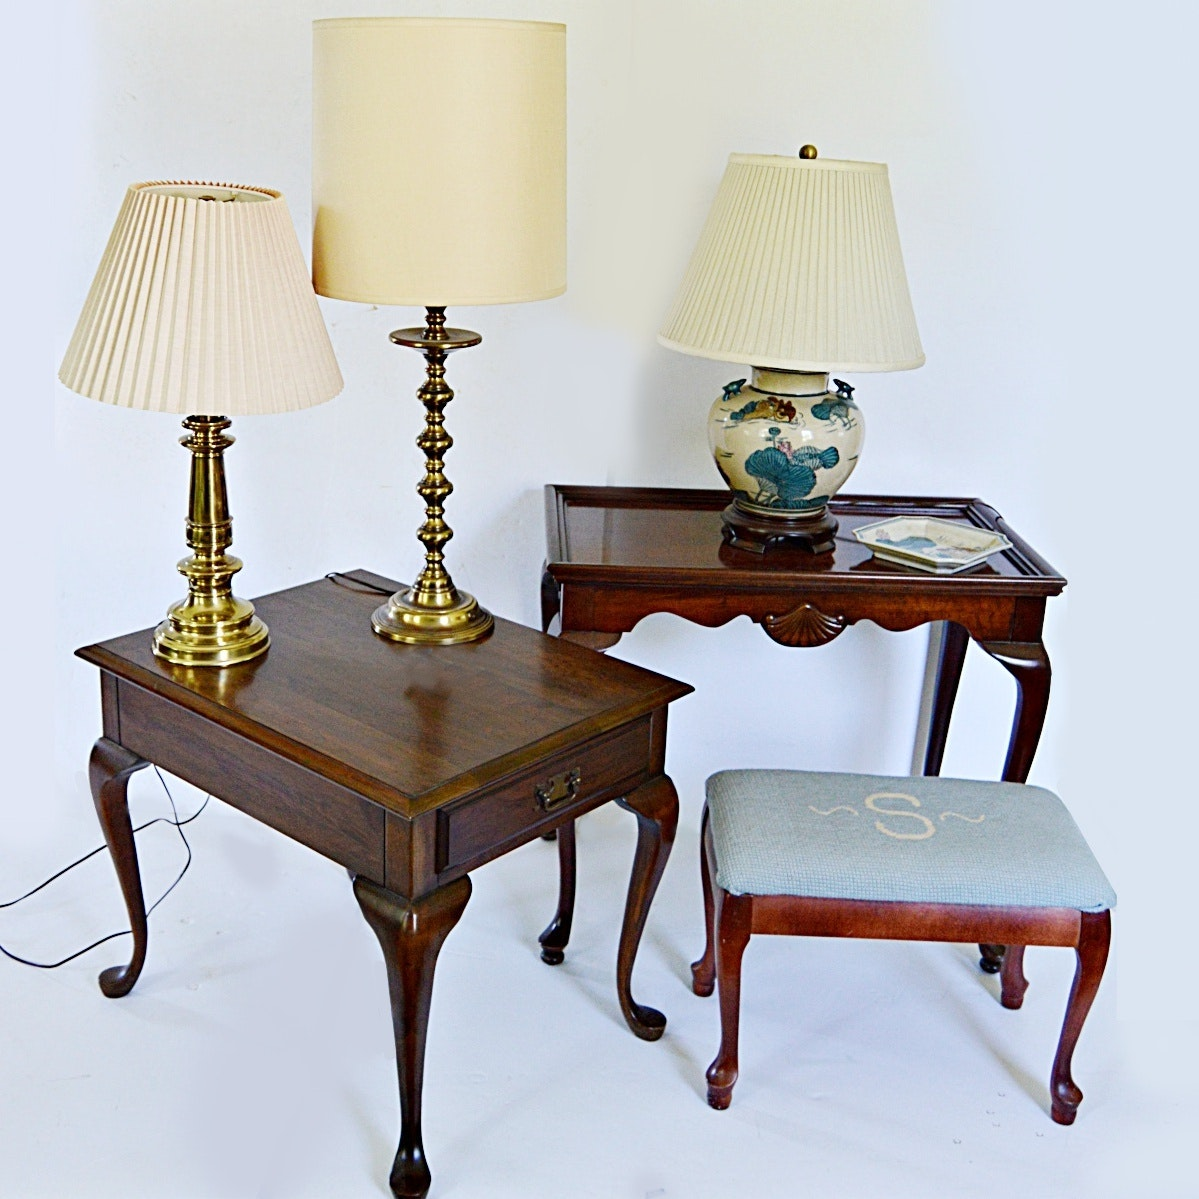 Queen Anne Style Tables, Stool, Stiffel Brass Lamp, Chinese Lamp